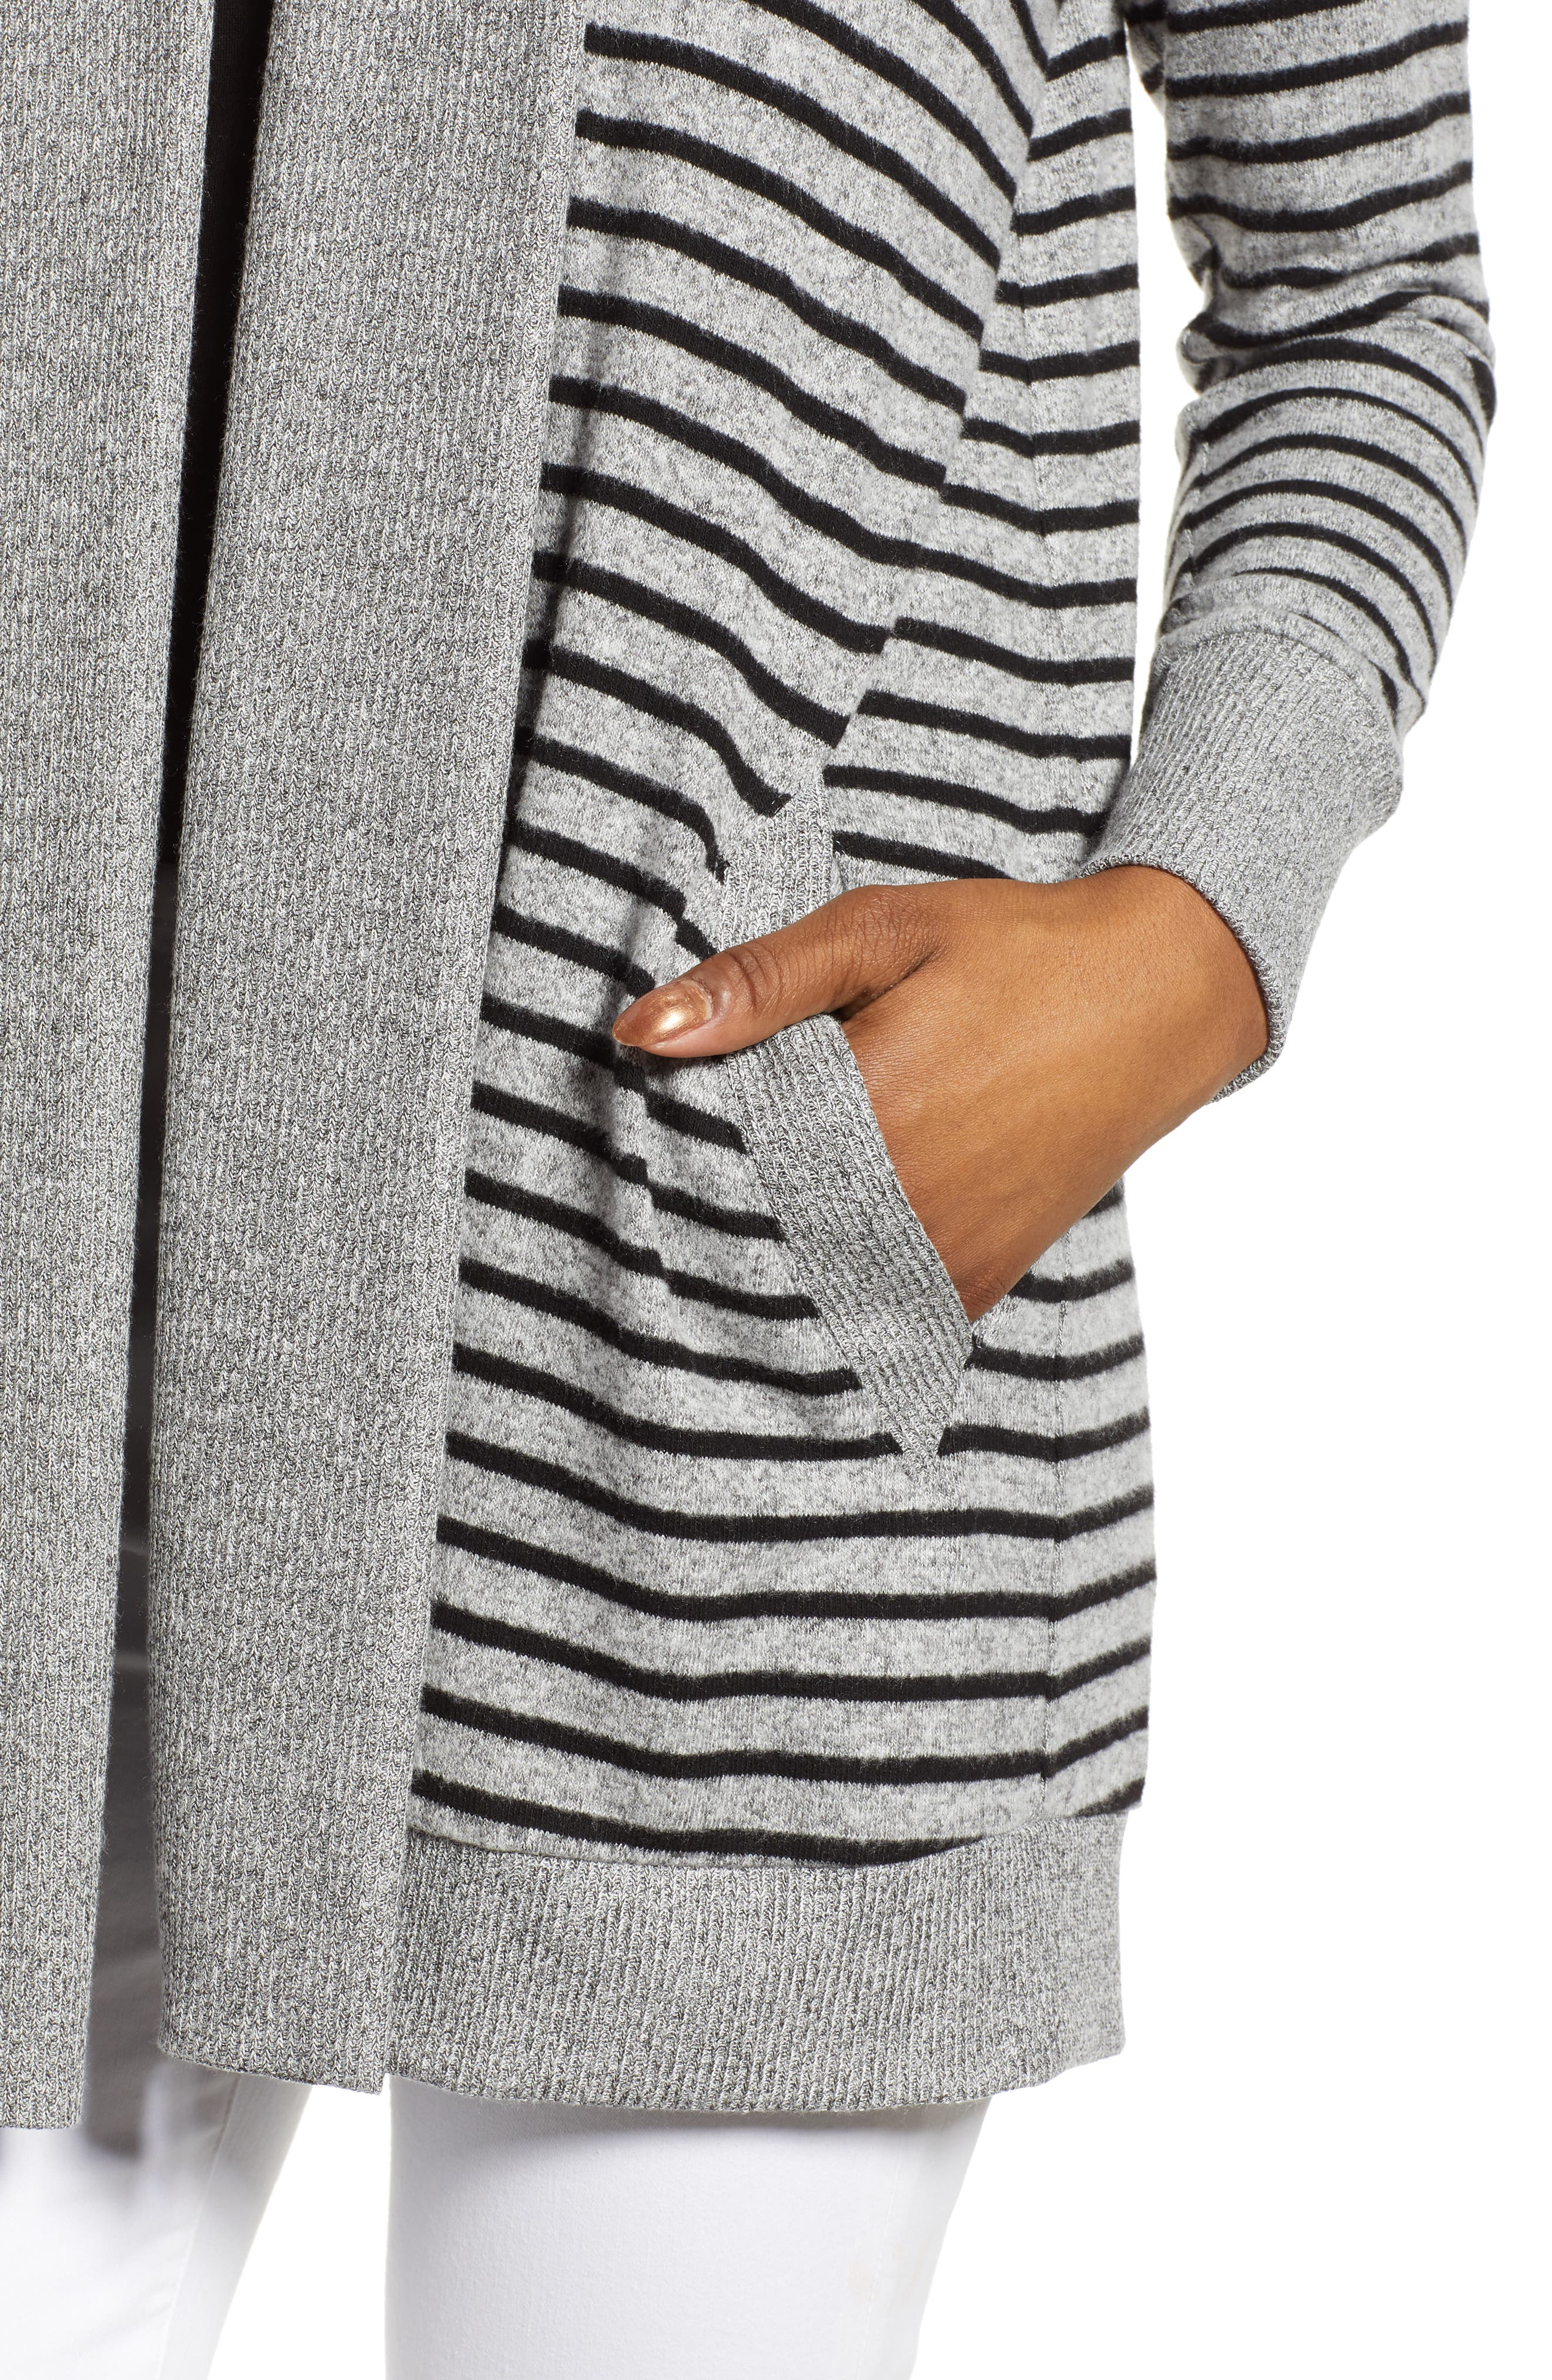 GIBSON, Cozy Ribbed Cardigan, Alternate thumbnail 4, color, GREY/ BLACK STRIPE